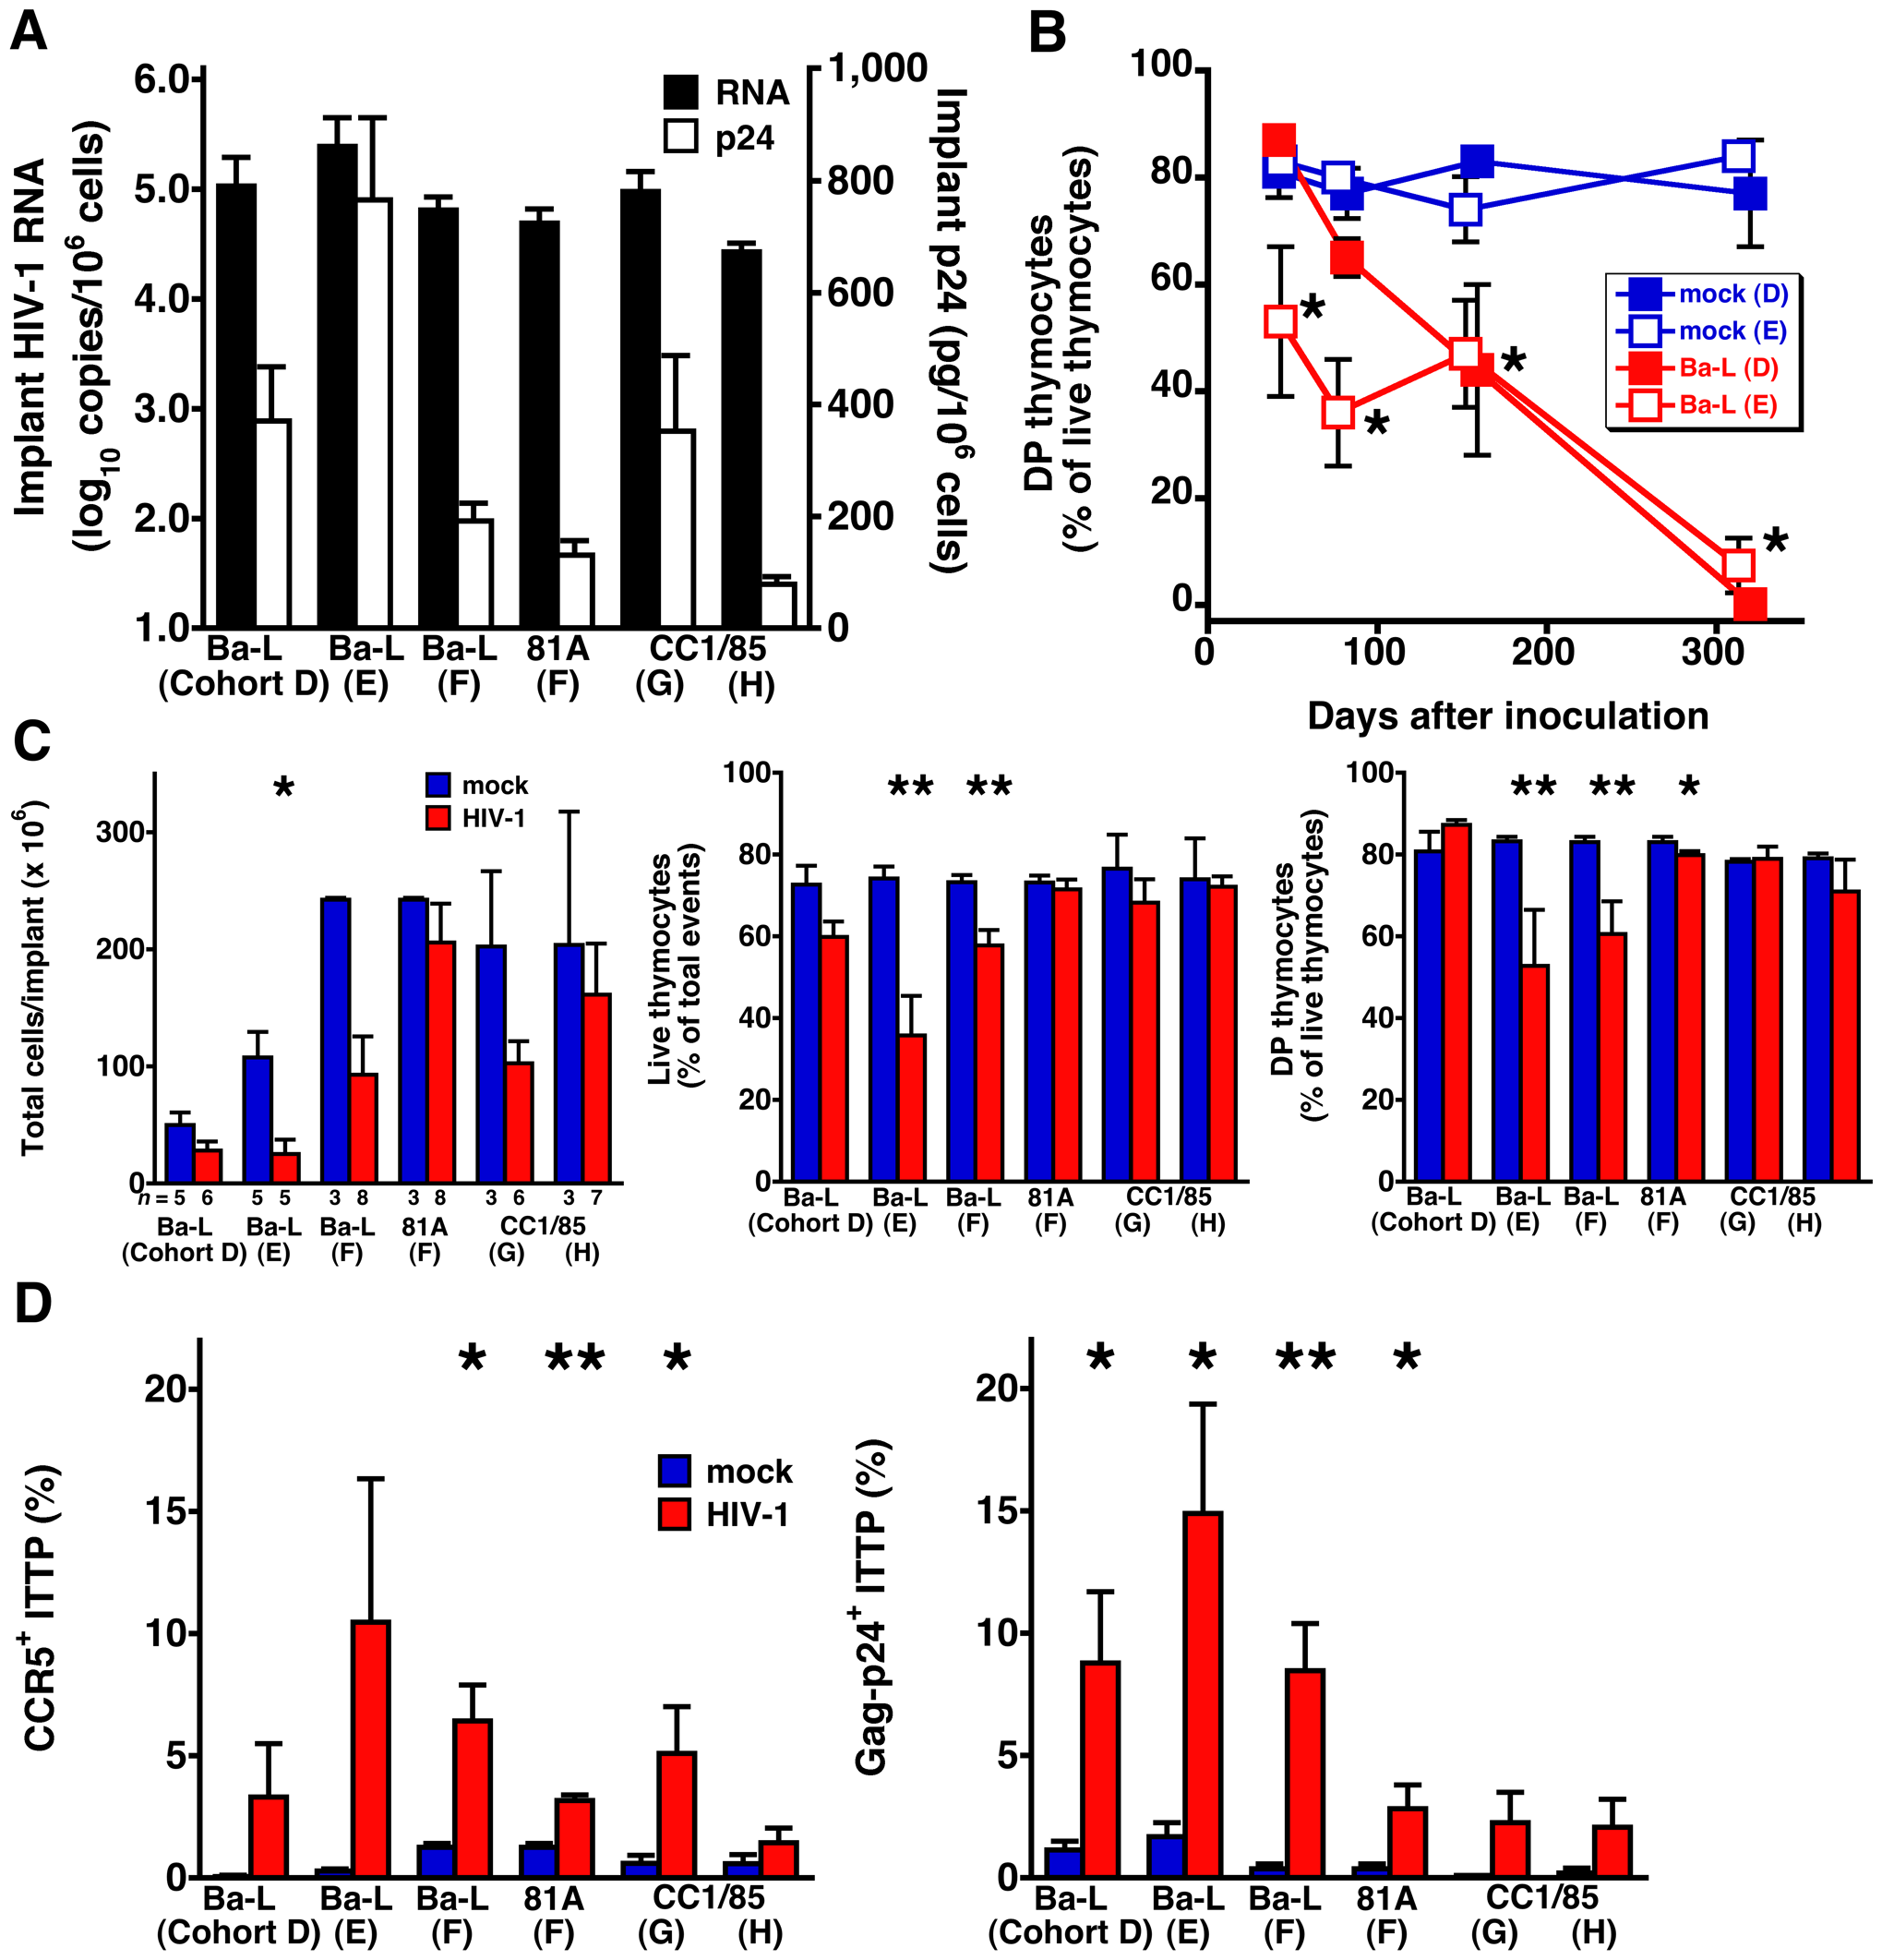 Thymocyte depletion and CCR5 induction on ITTP in six SCID-hu Thy/Liv mouse cohorts infected with R5 HIV Ba-L, 81A, or CC1/85.